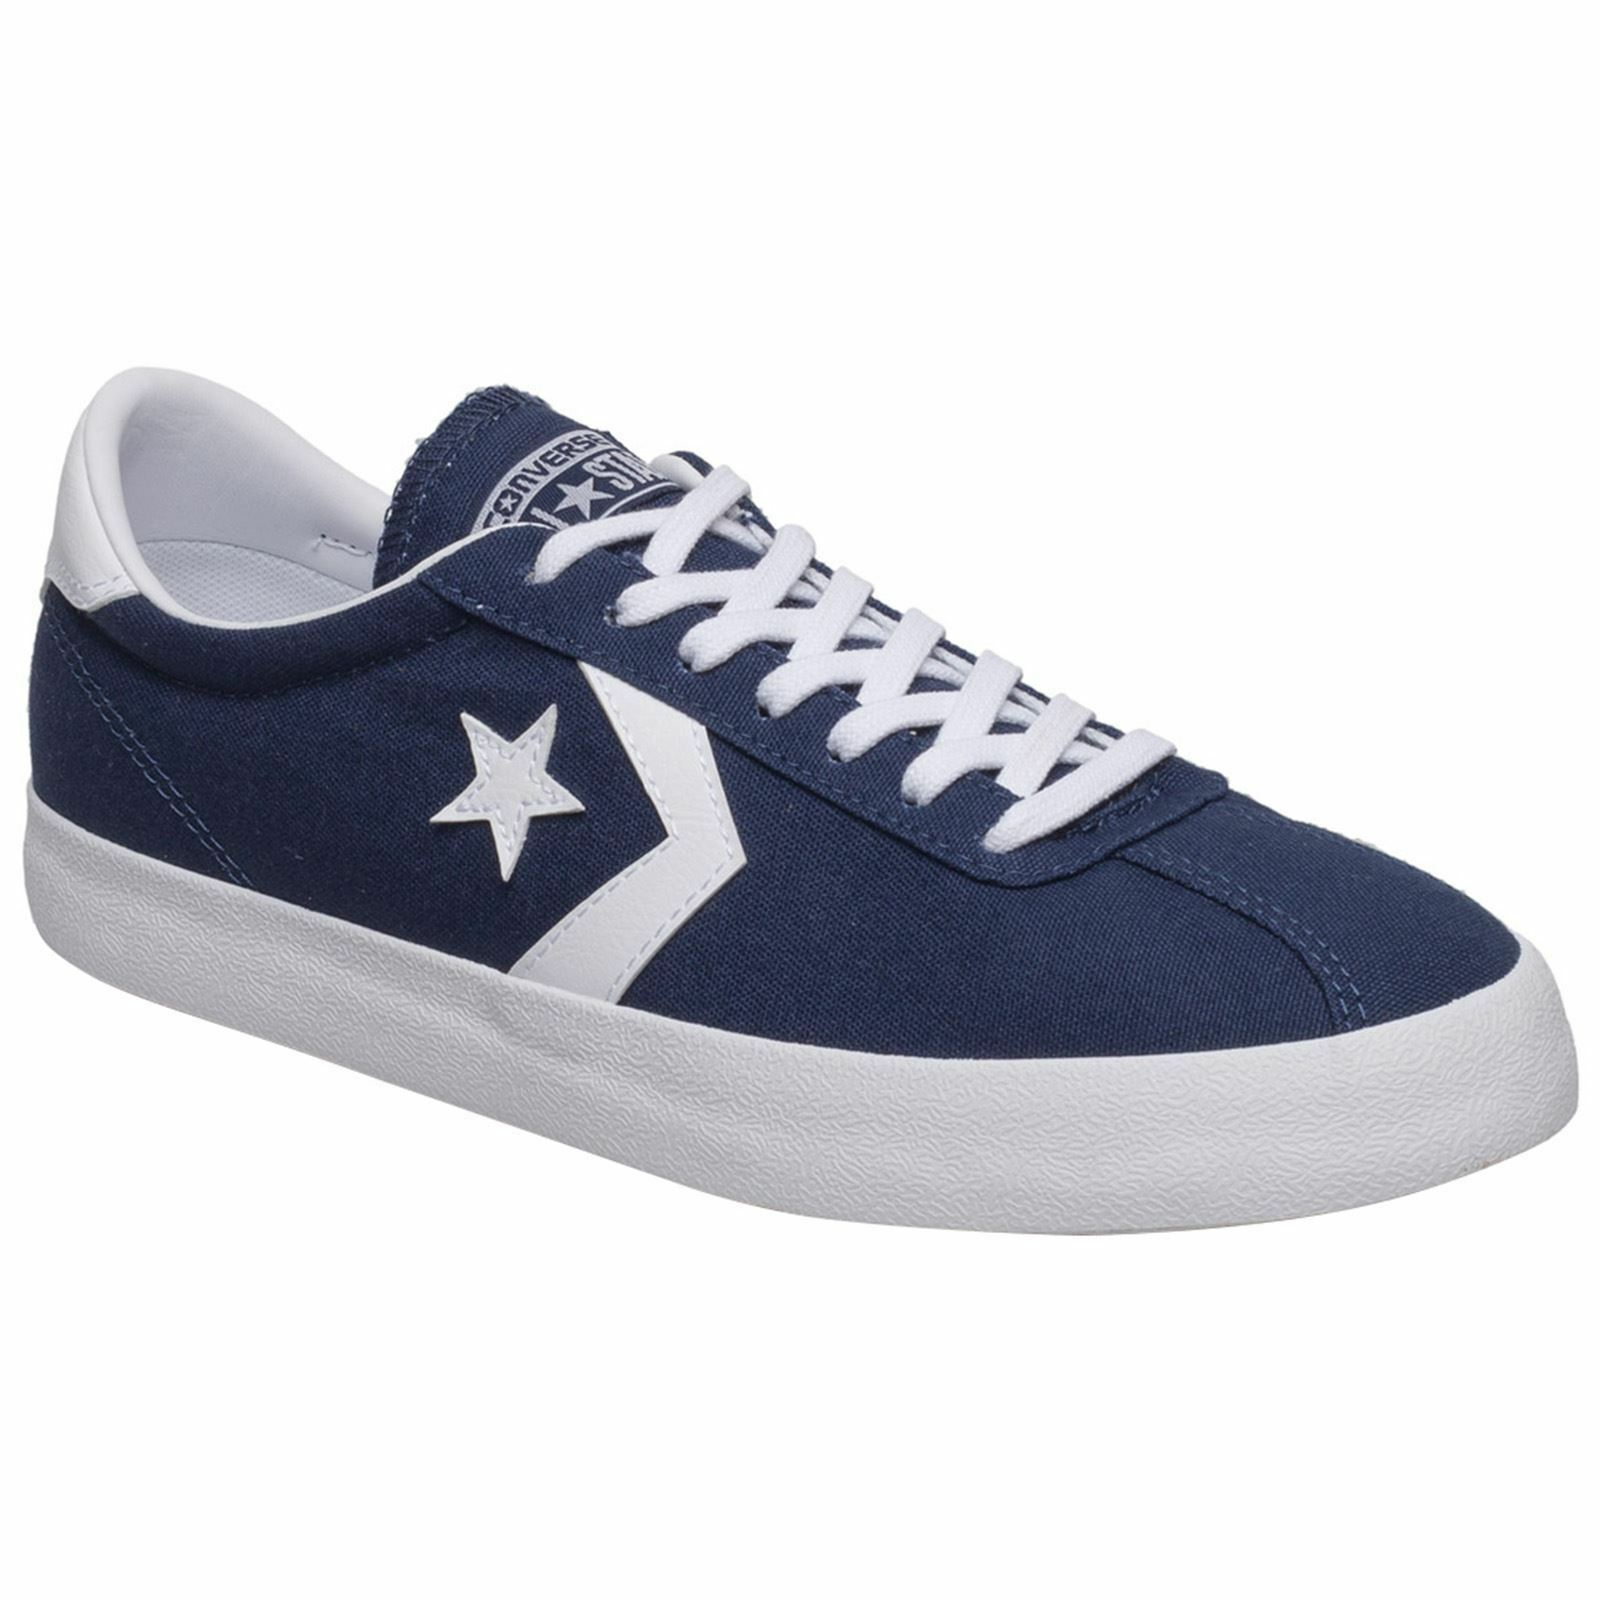 Converse Breakpoint Ox Ox Ox Midnight Navy blanc unisexe toile Low-top Baskets R 43c650